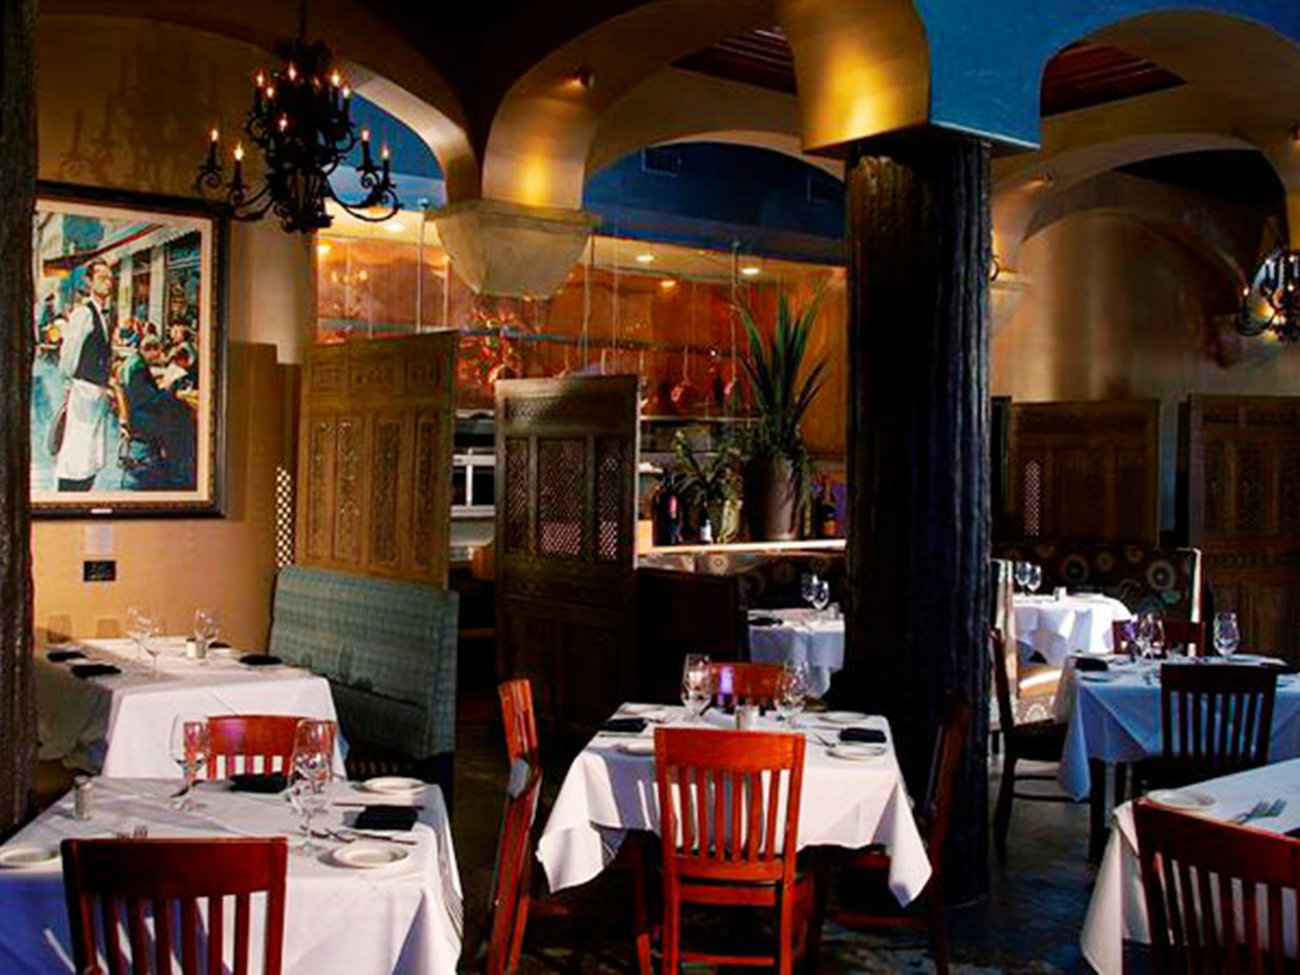 Al Biernat's Restaurant in Dallas